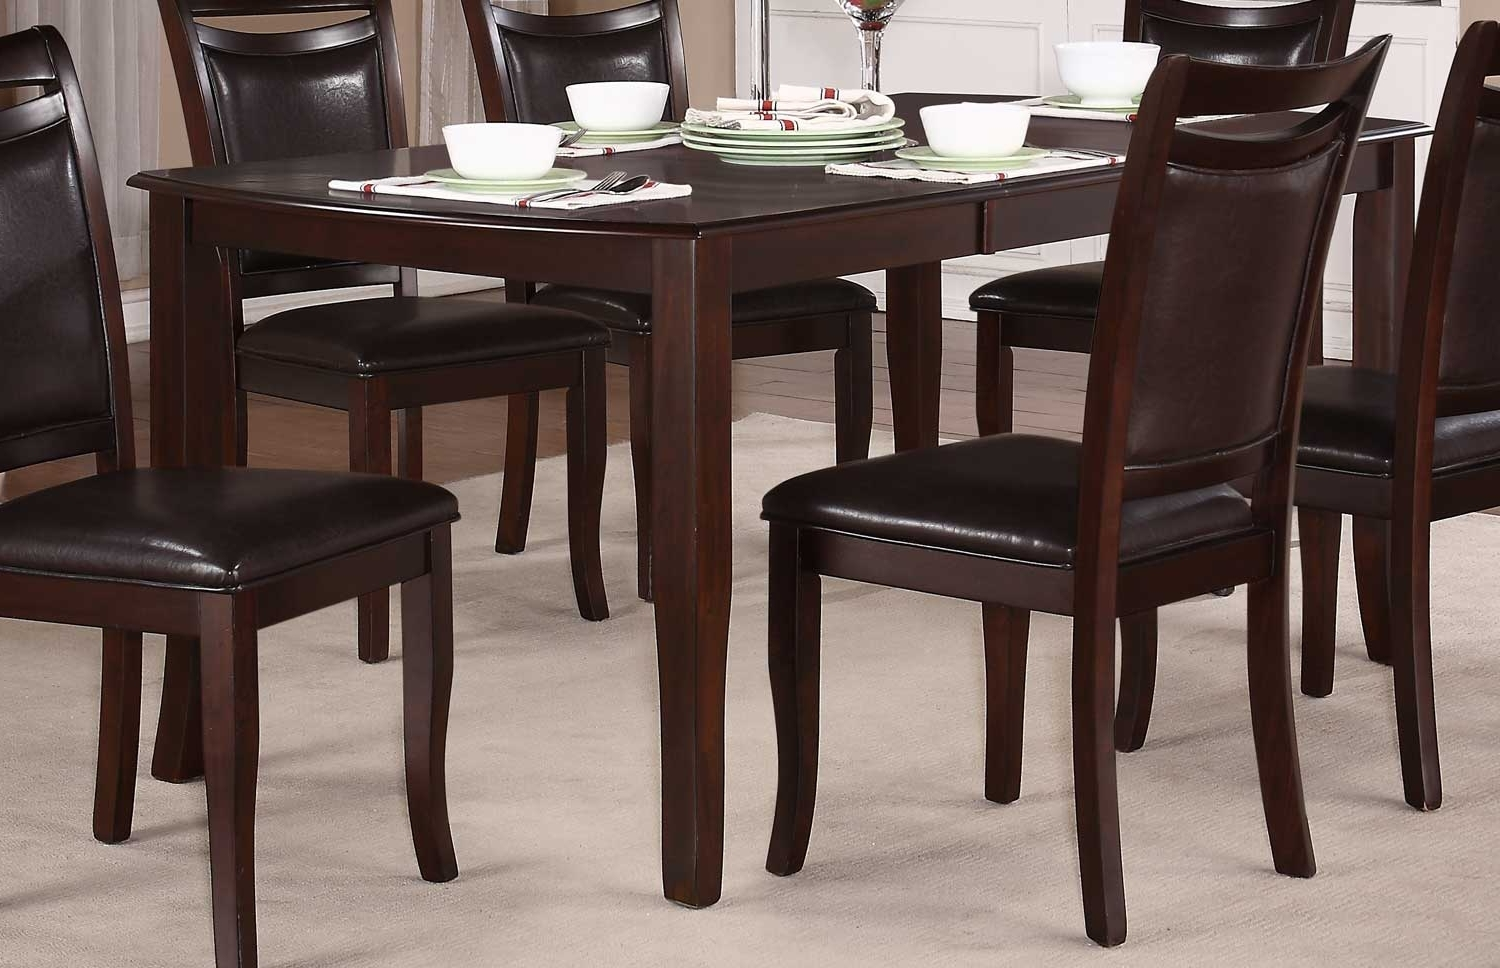 Homelegance Maeve Dining Table – Dark Cherry 2547 72 Intended For Popular Dark Dining Tables (View 11 of 25)